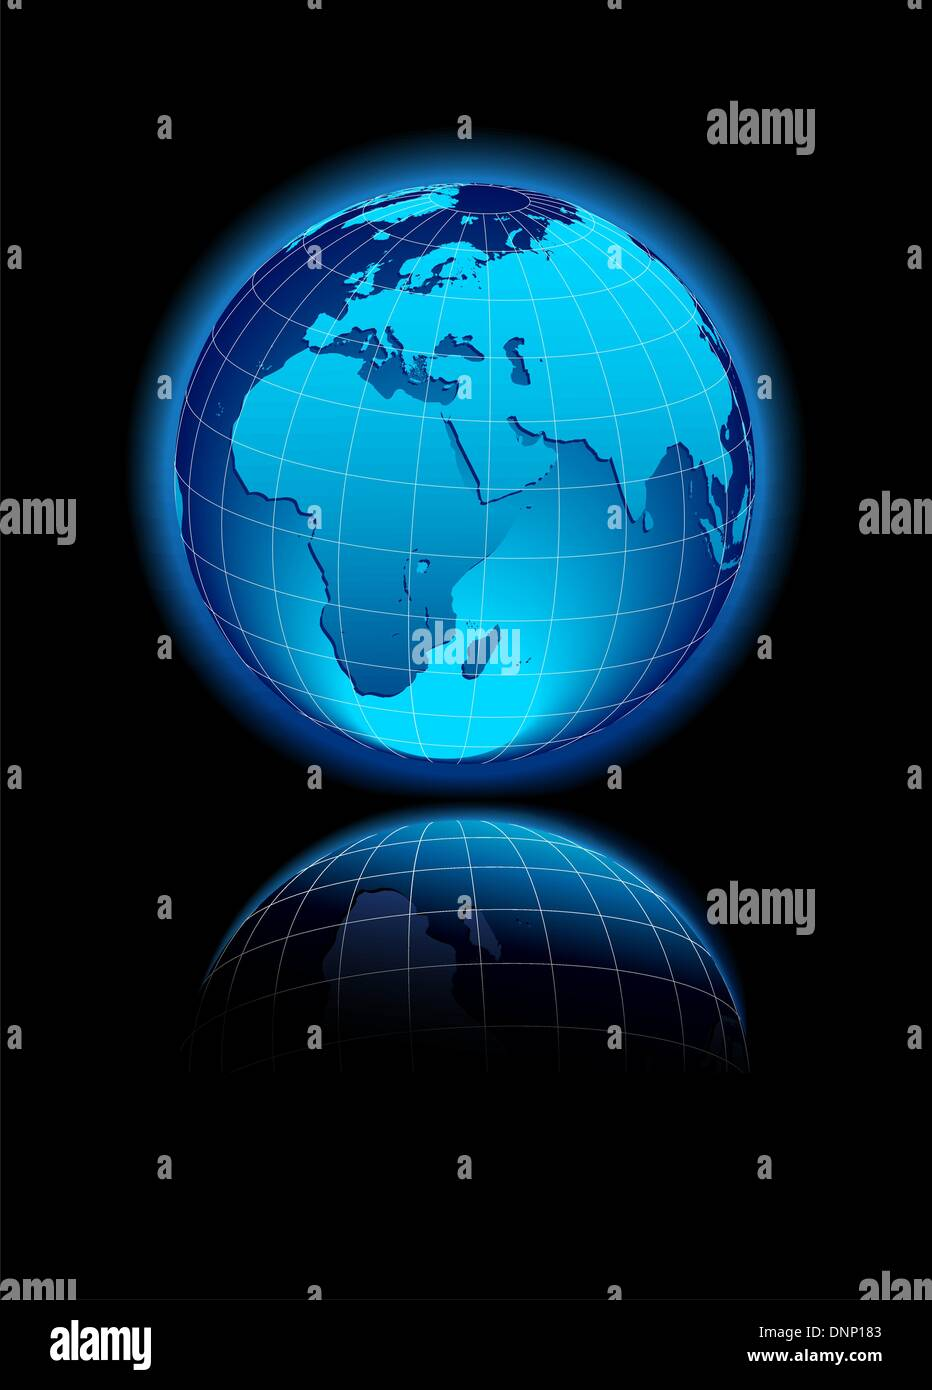 Vector Map Icon of the world in Globe form - Africa, Middle East - Stock Image